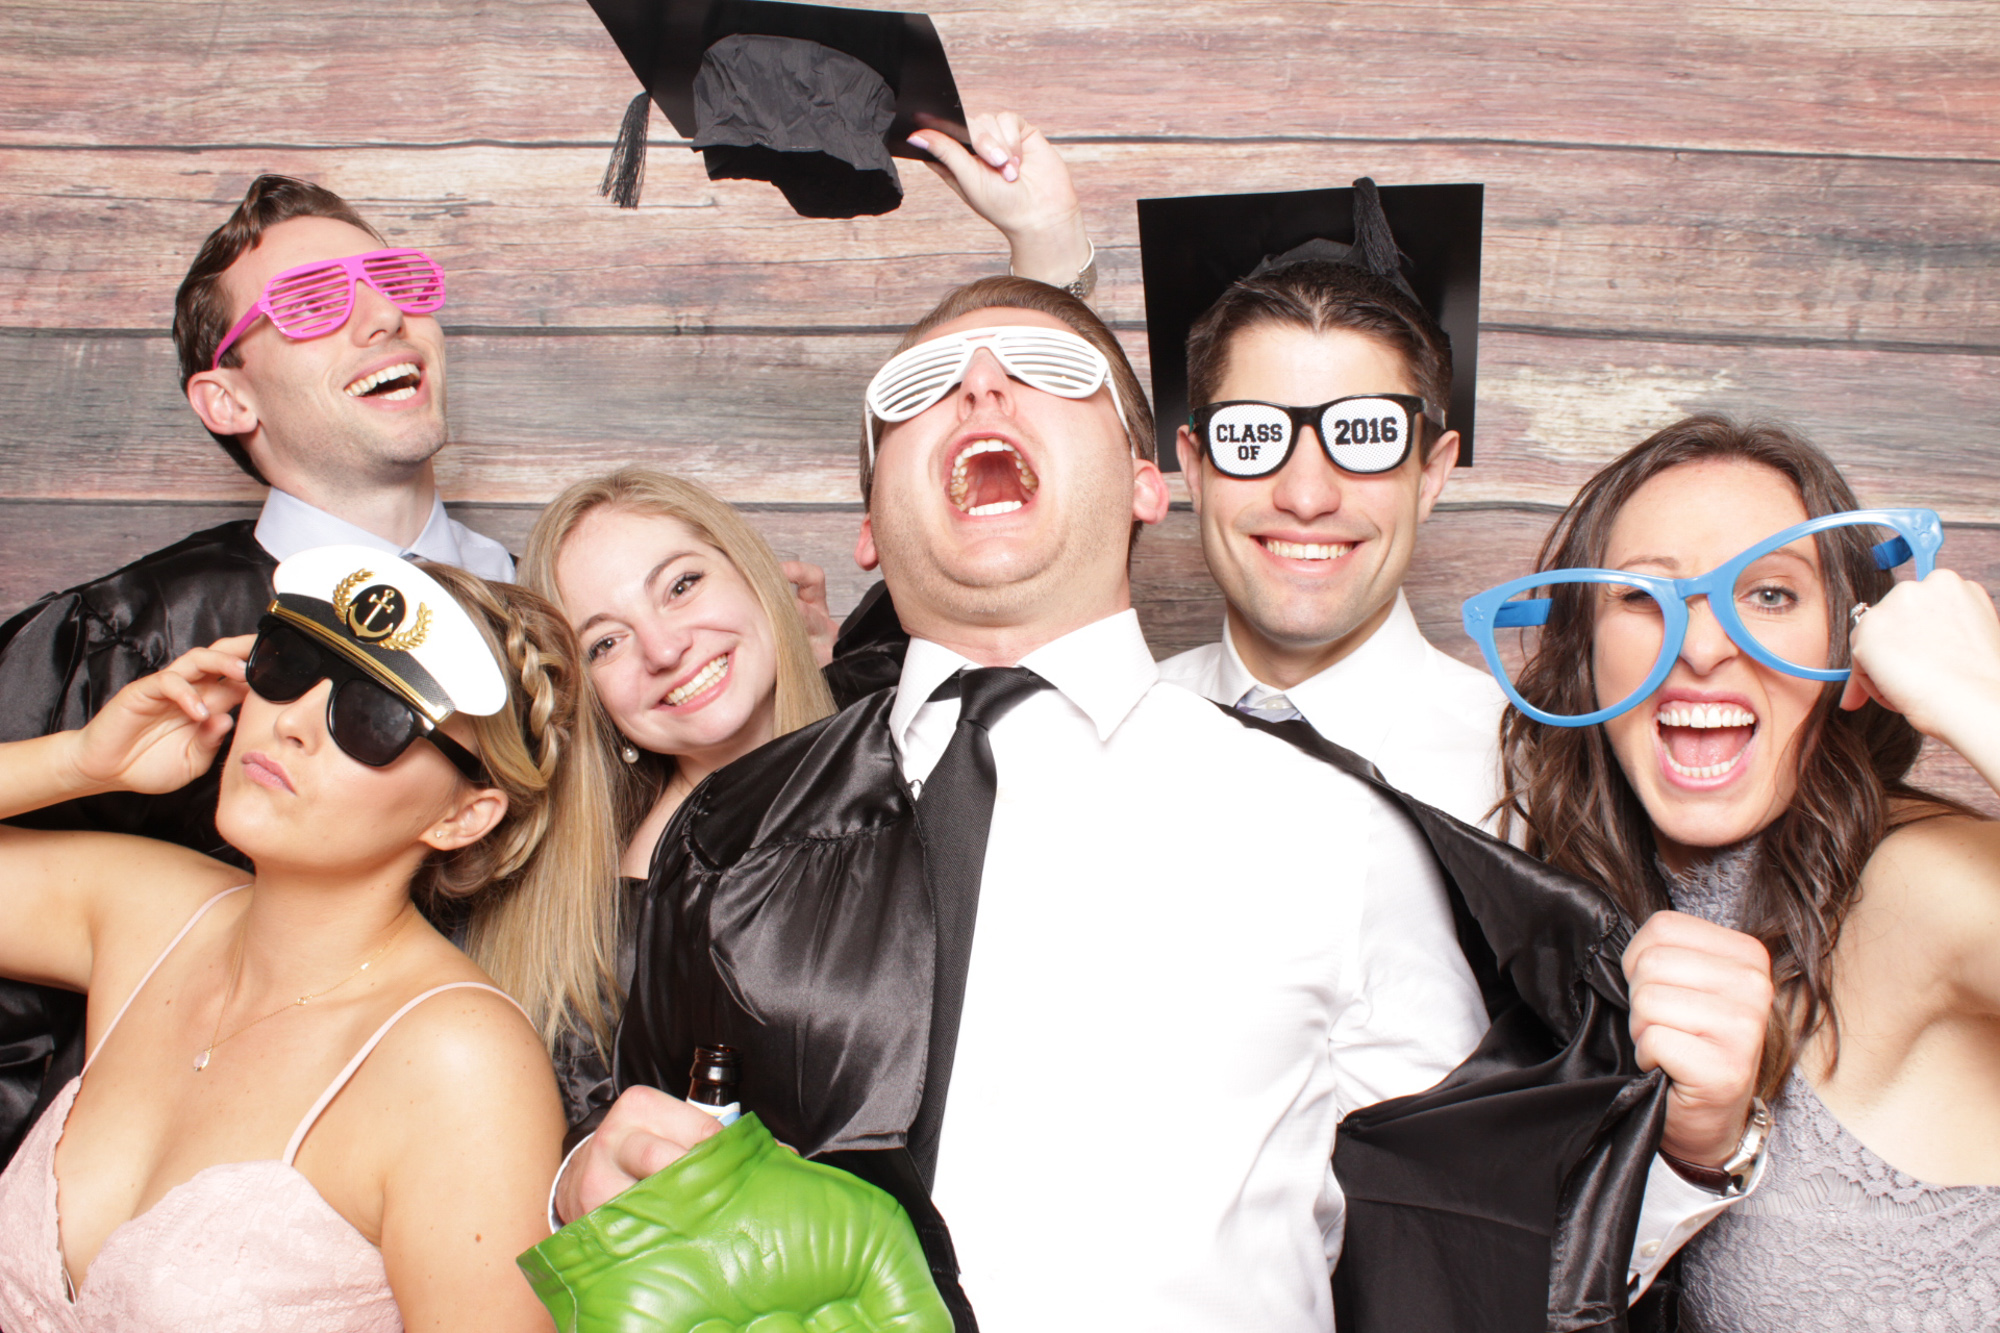 nyc photo booth new jersey photo booth wedding